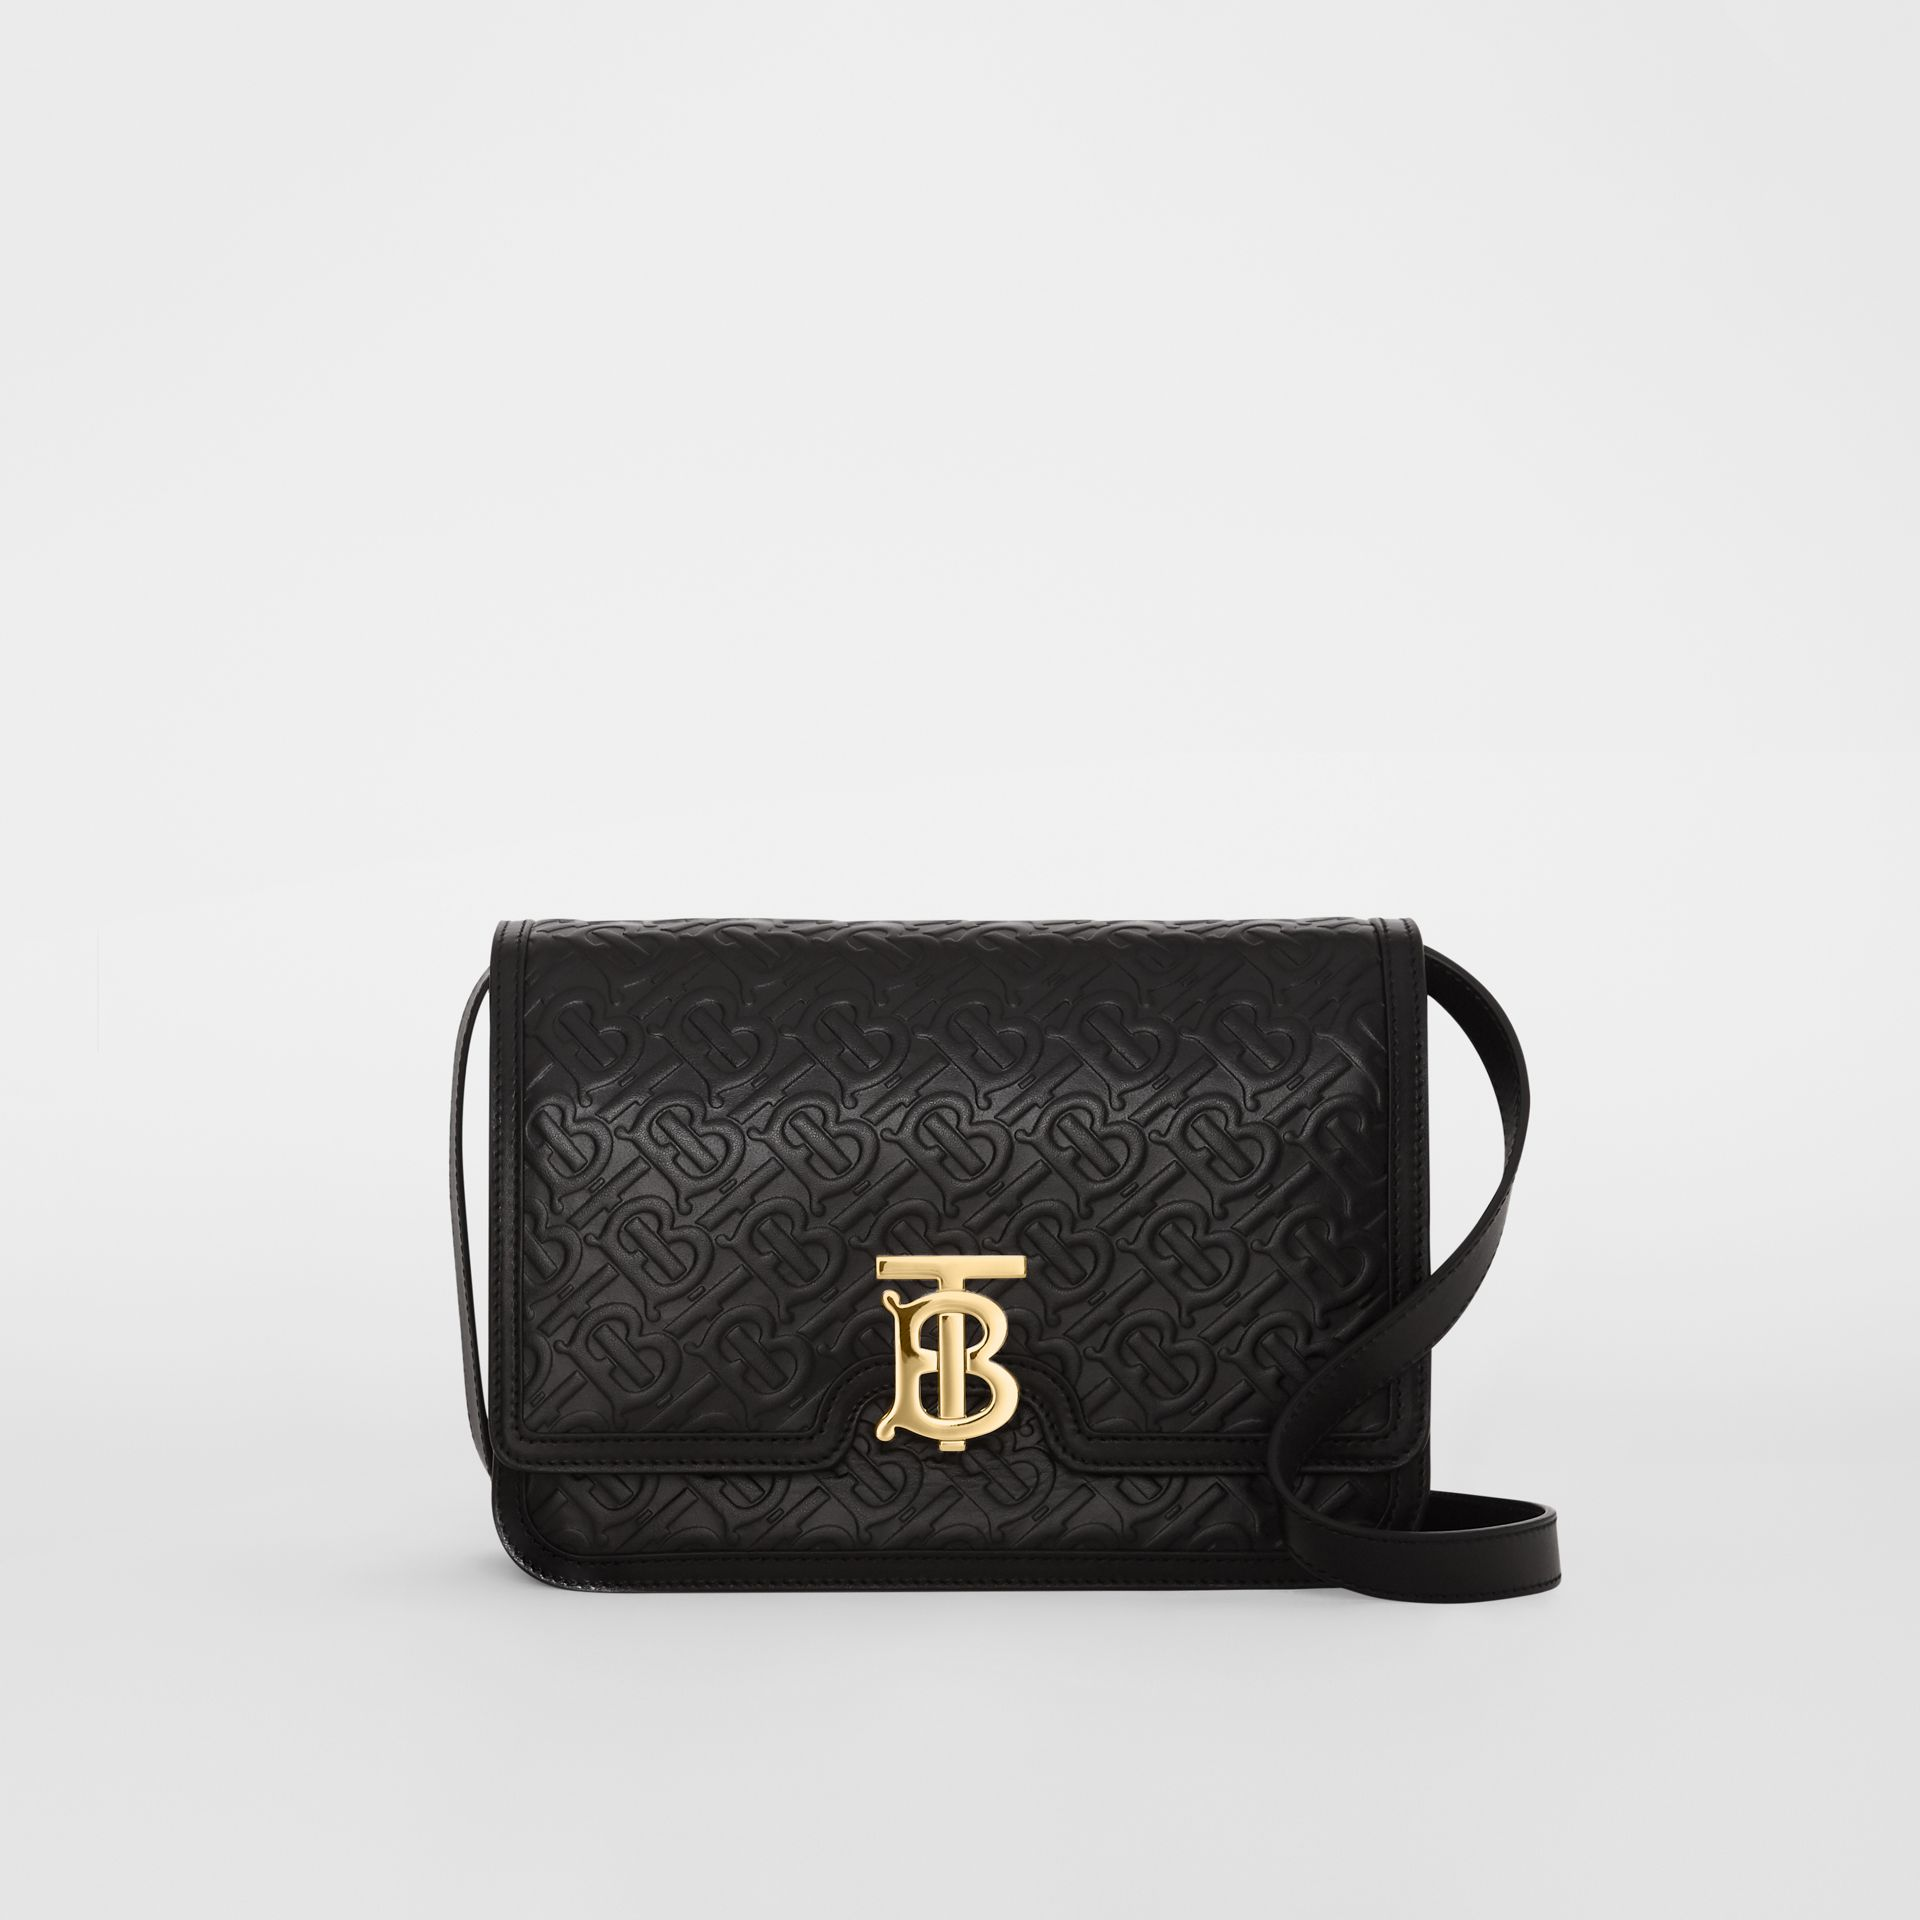 Medium Monogram Leather TB Bag in Black - Women | Burberry - gallery image 0